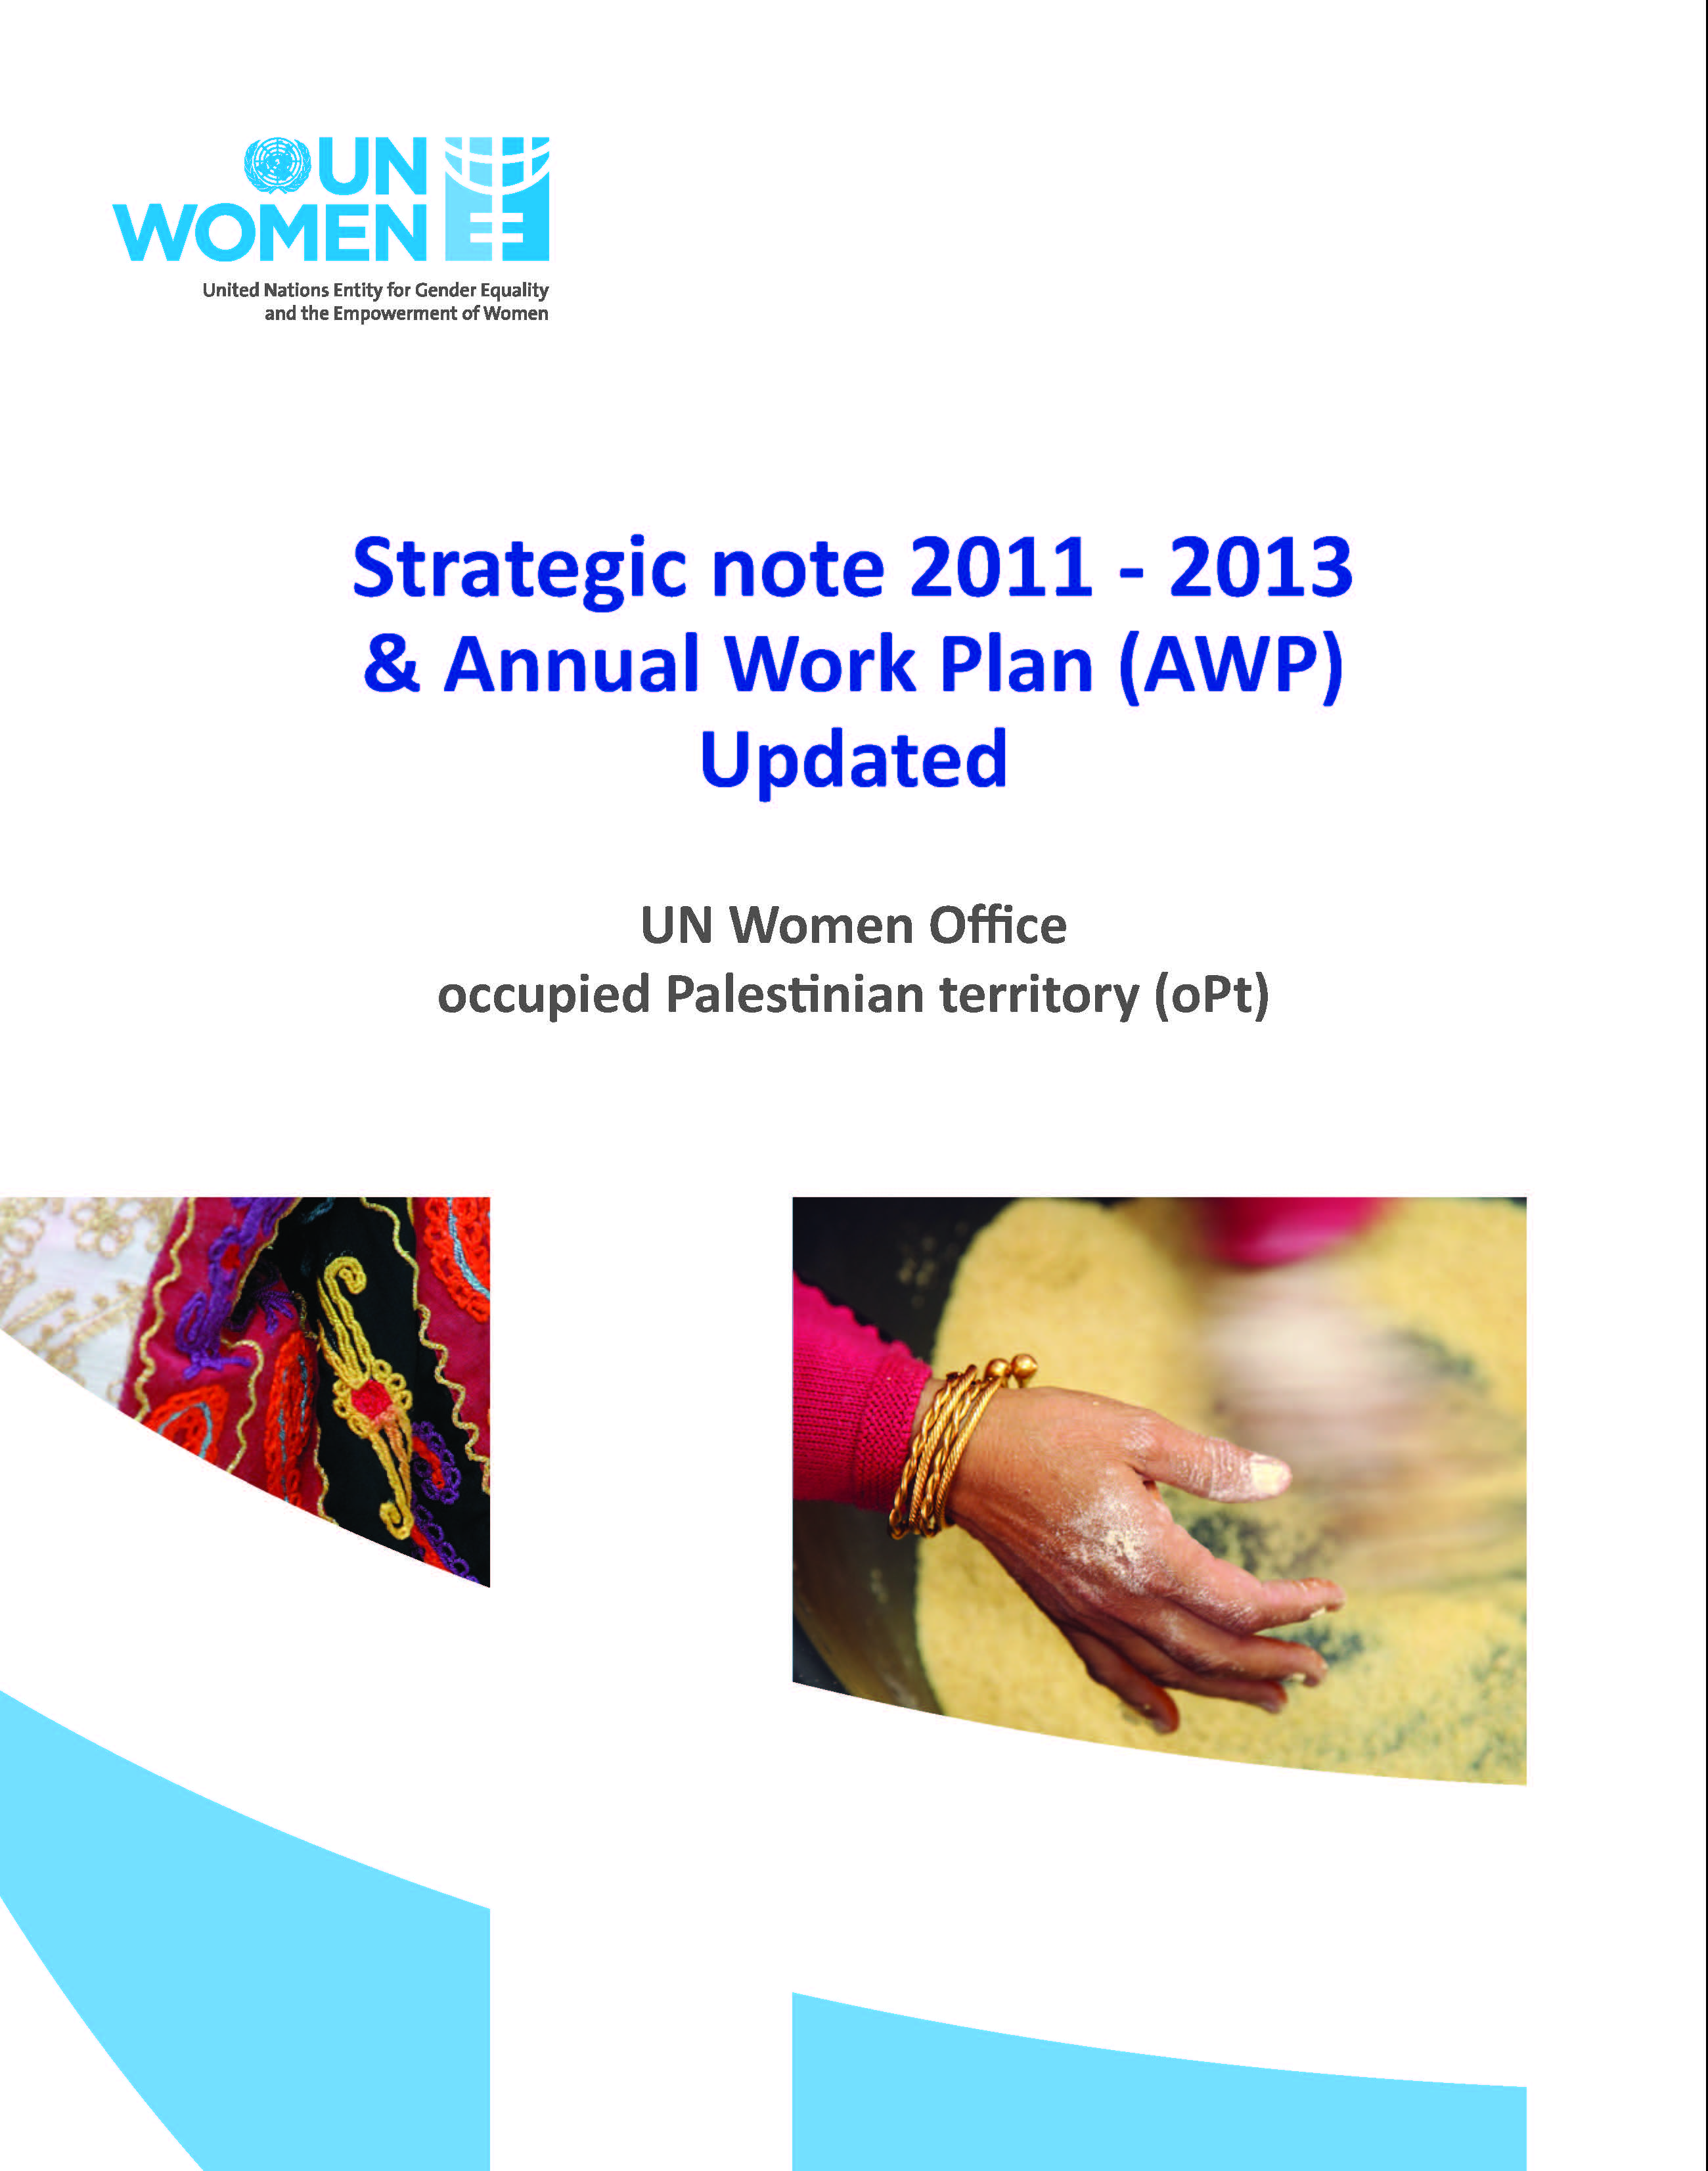 Strategic Note 2012-2013 & Annual Work Plan (updated)